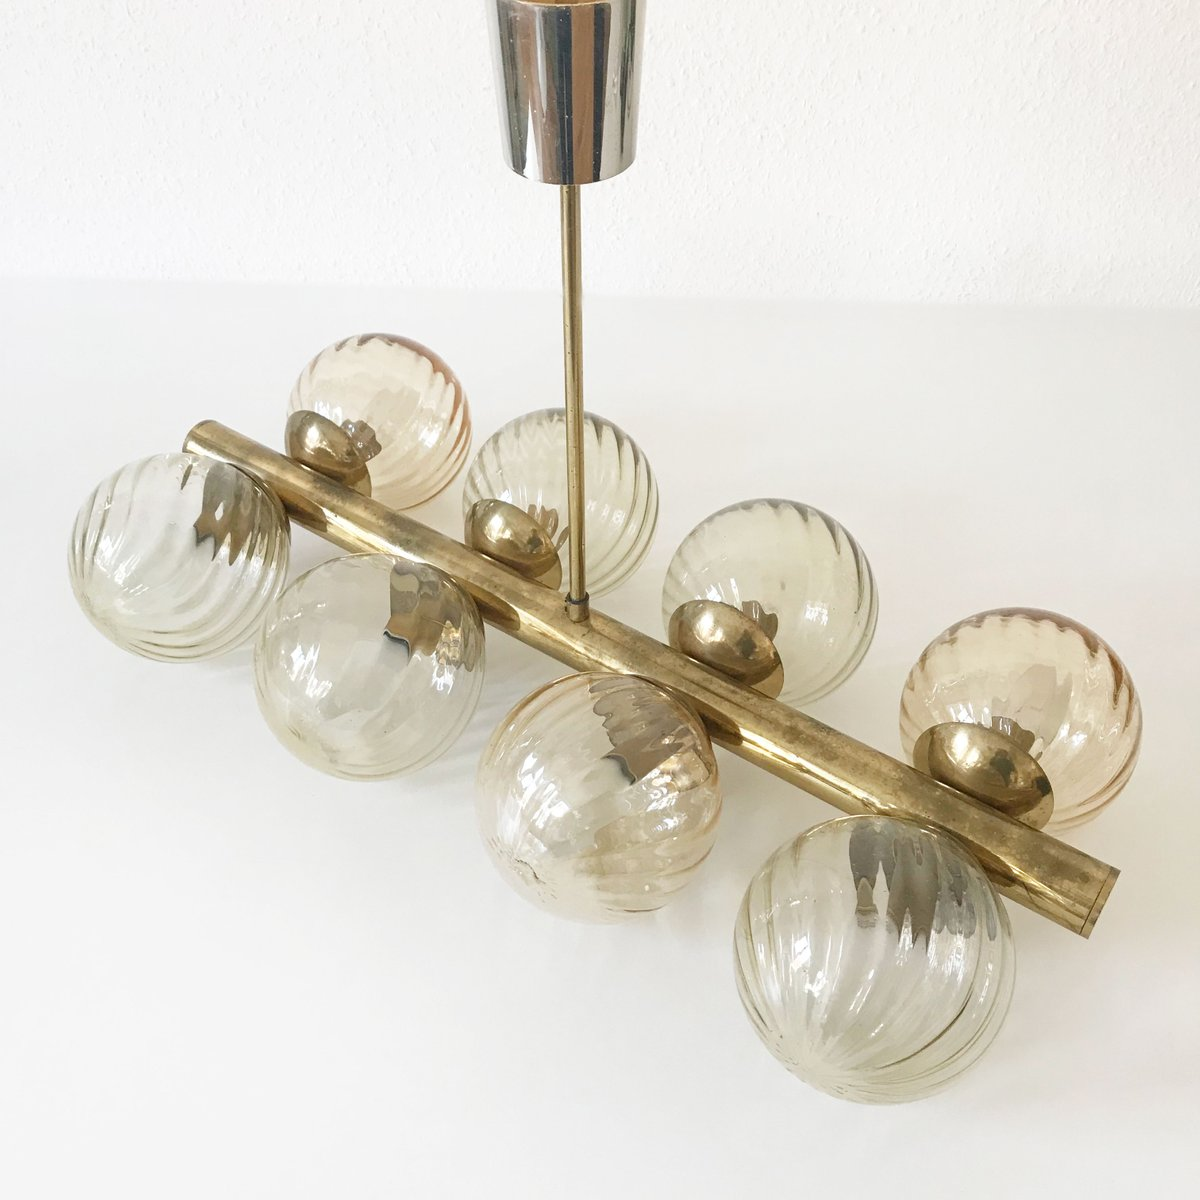 Mid century cluster multi globe atomic chandelier lamp from kaiser mid century cluster multi globe atomic chandelier lamp from kaiser leuchten arubaitofo Image collections